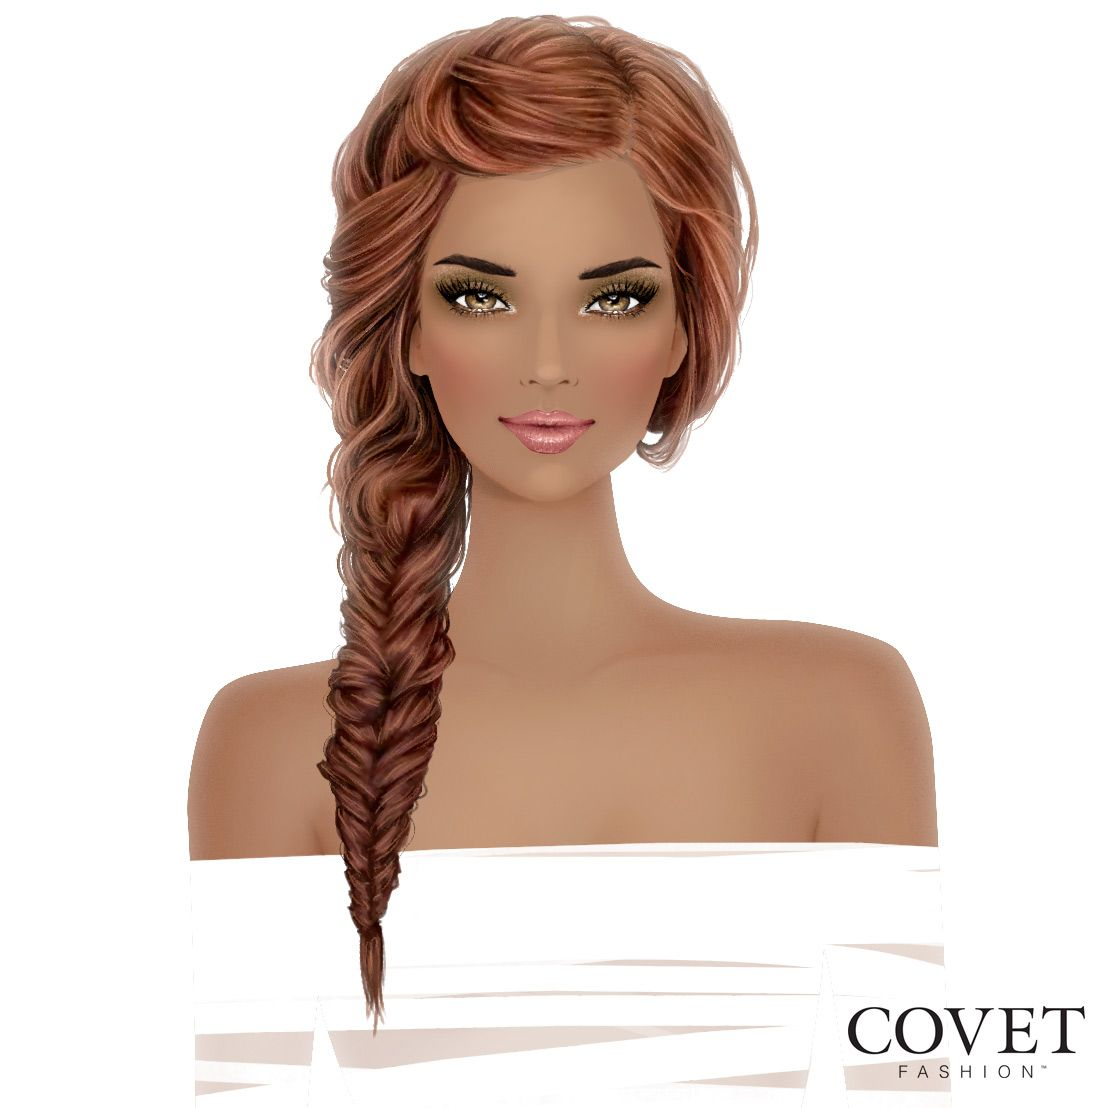 Homepage - Covet Fashion